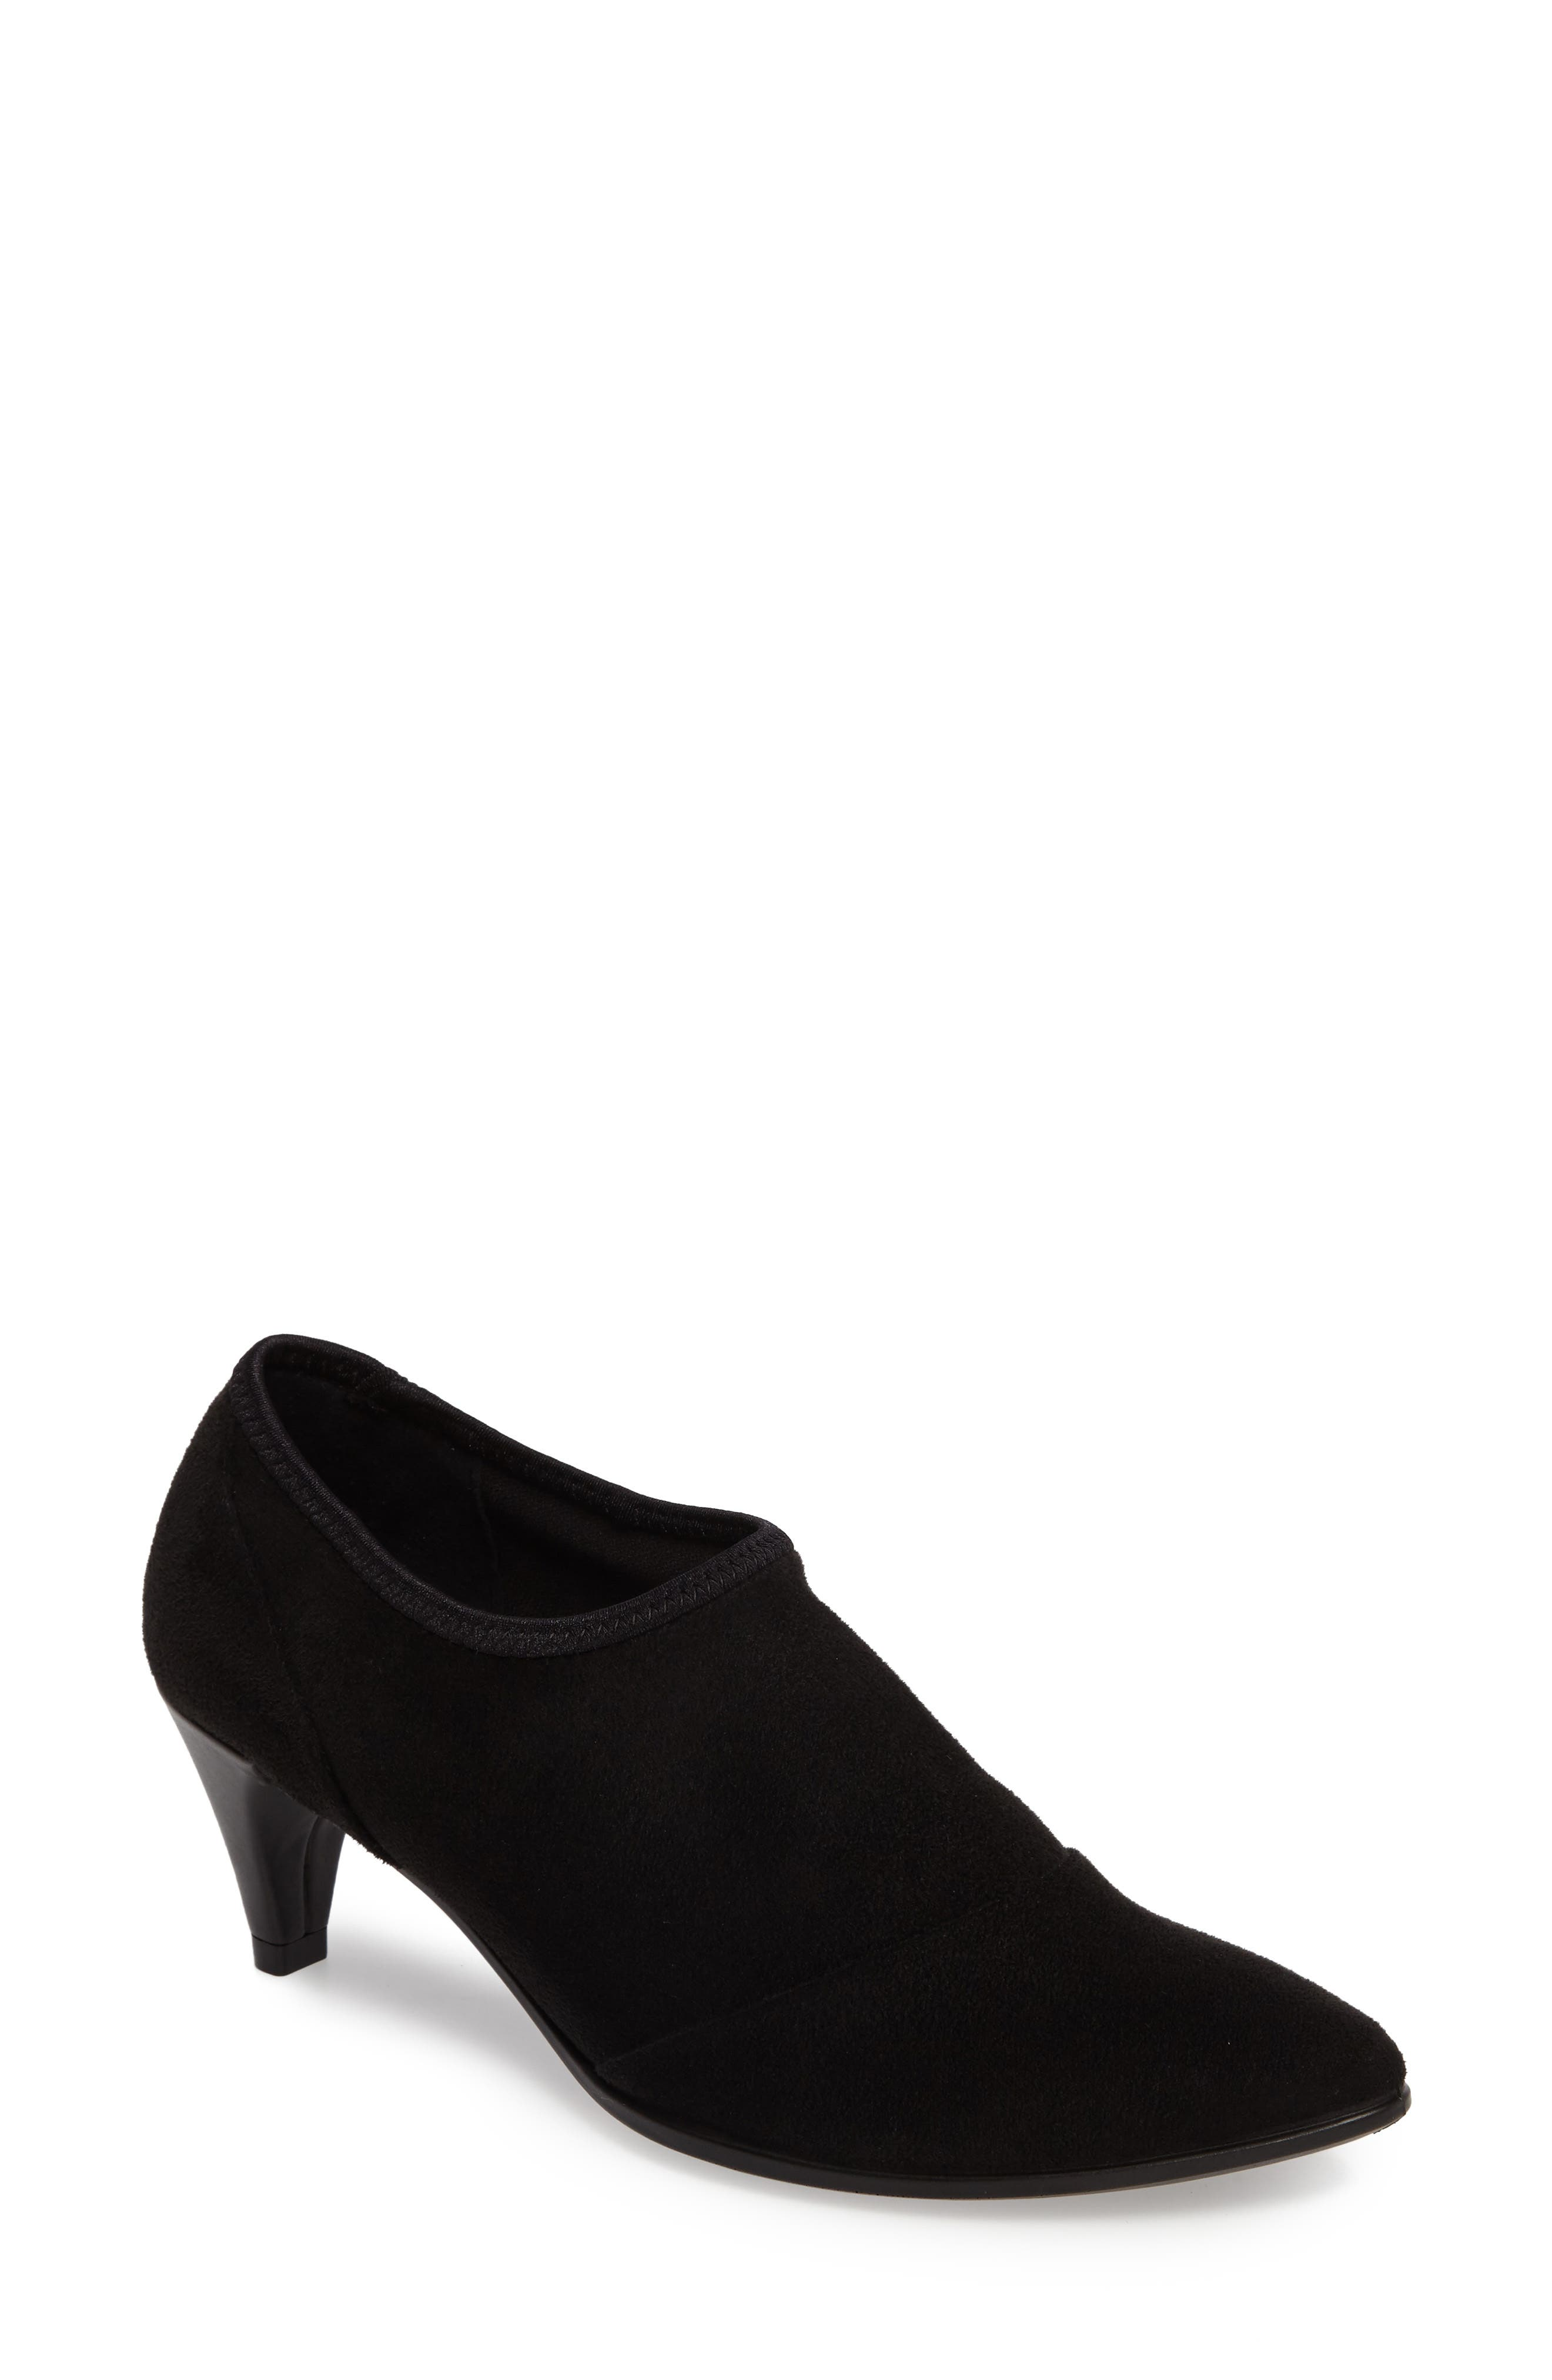 Main Image - ECCO Shape 45 Pump (Women)